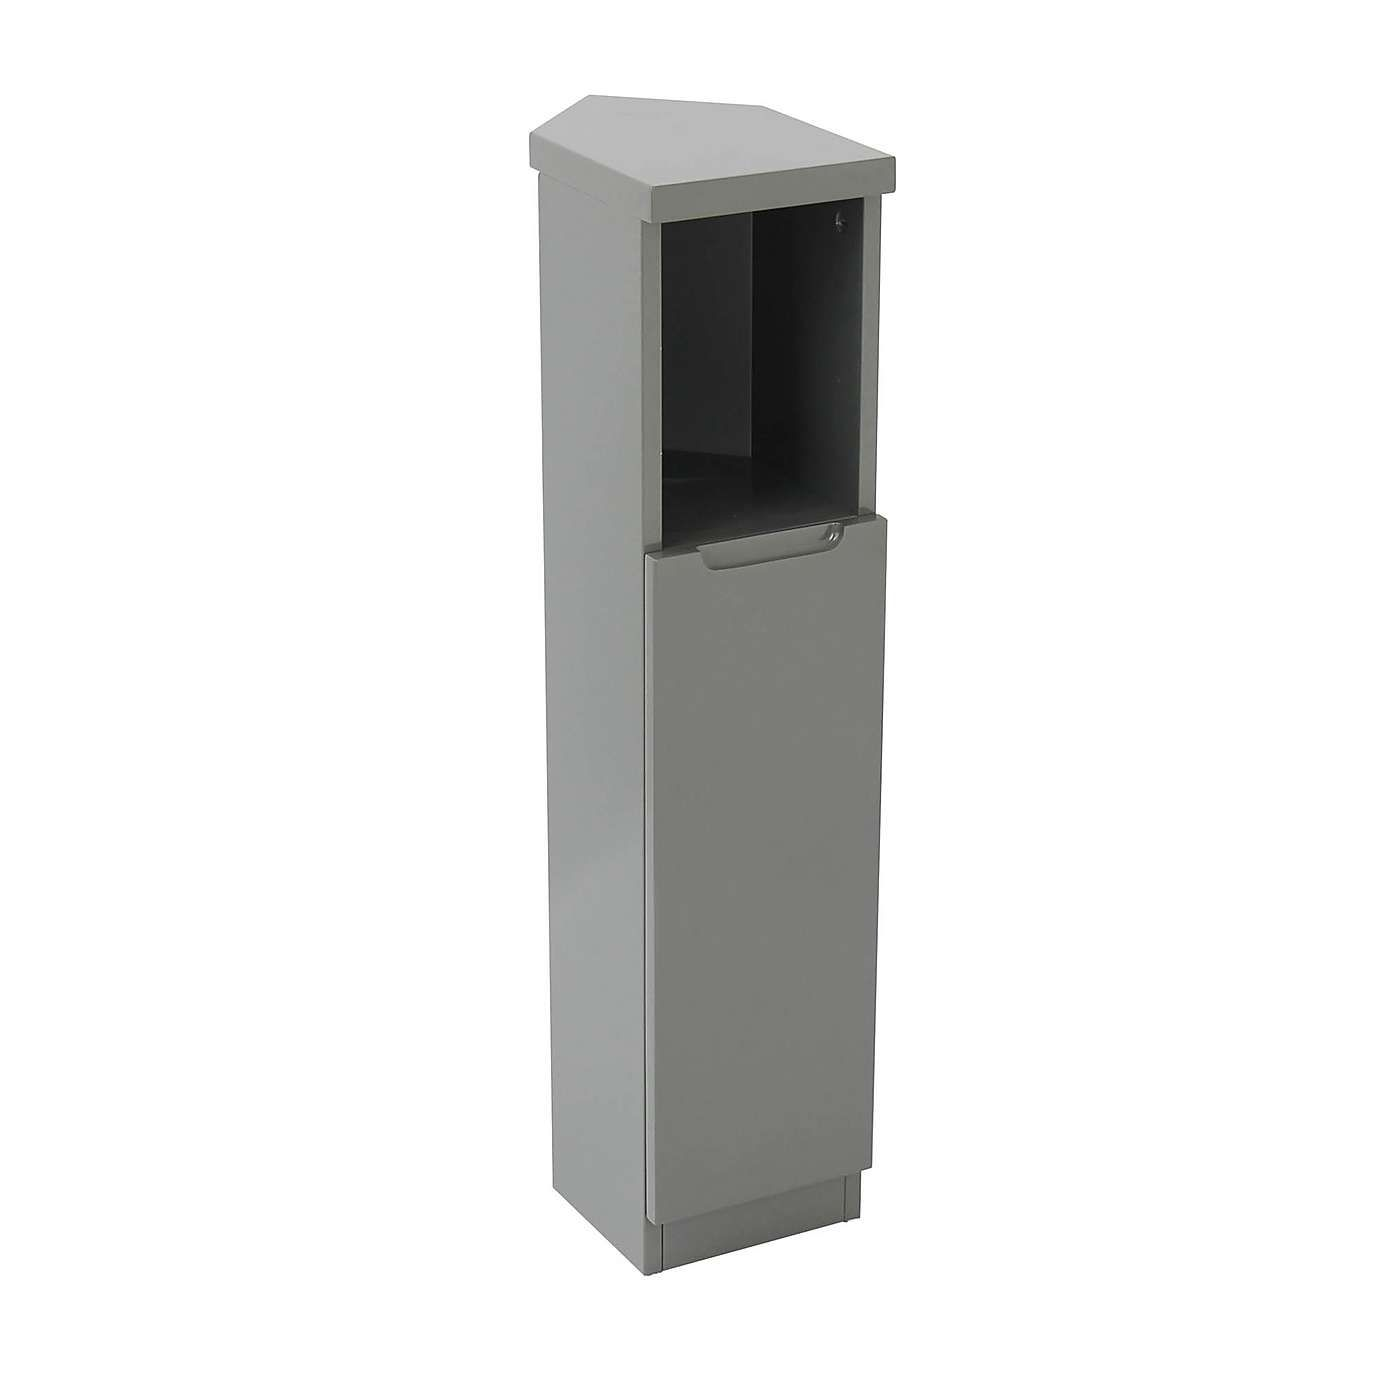 Siena Grey Corner Cabinet Corner Cabinet Bathroom Furniture Storage Cabinet